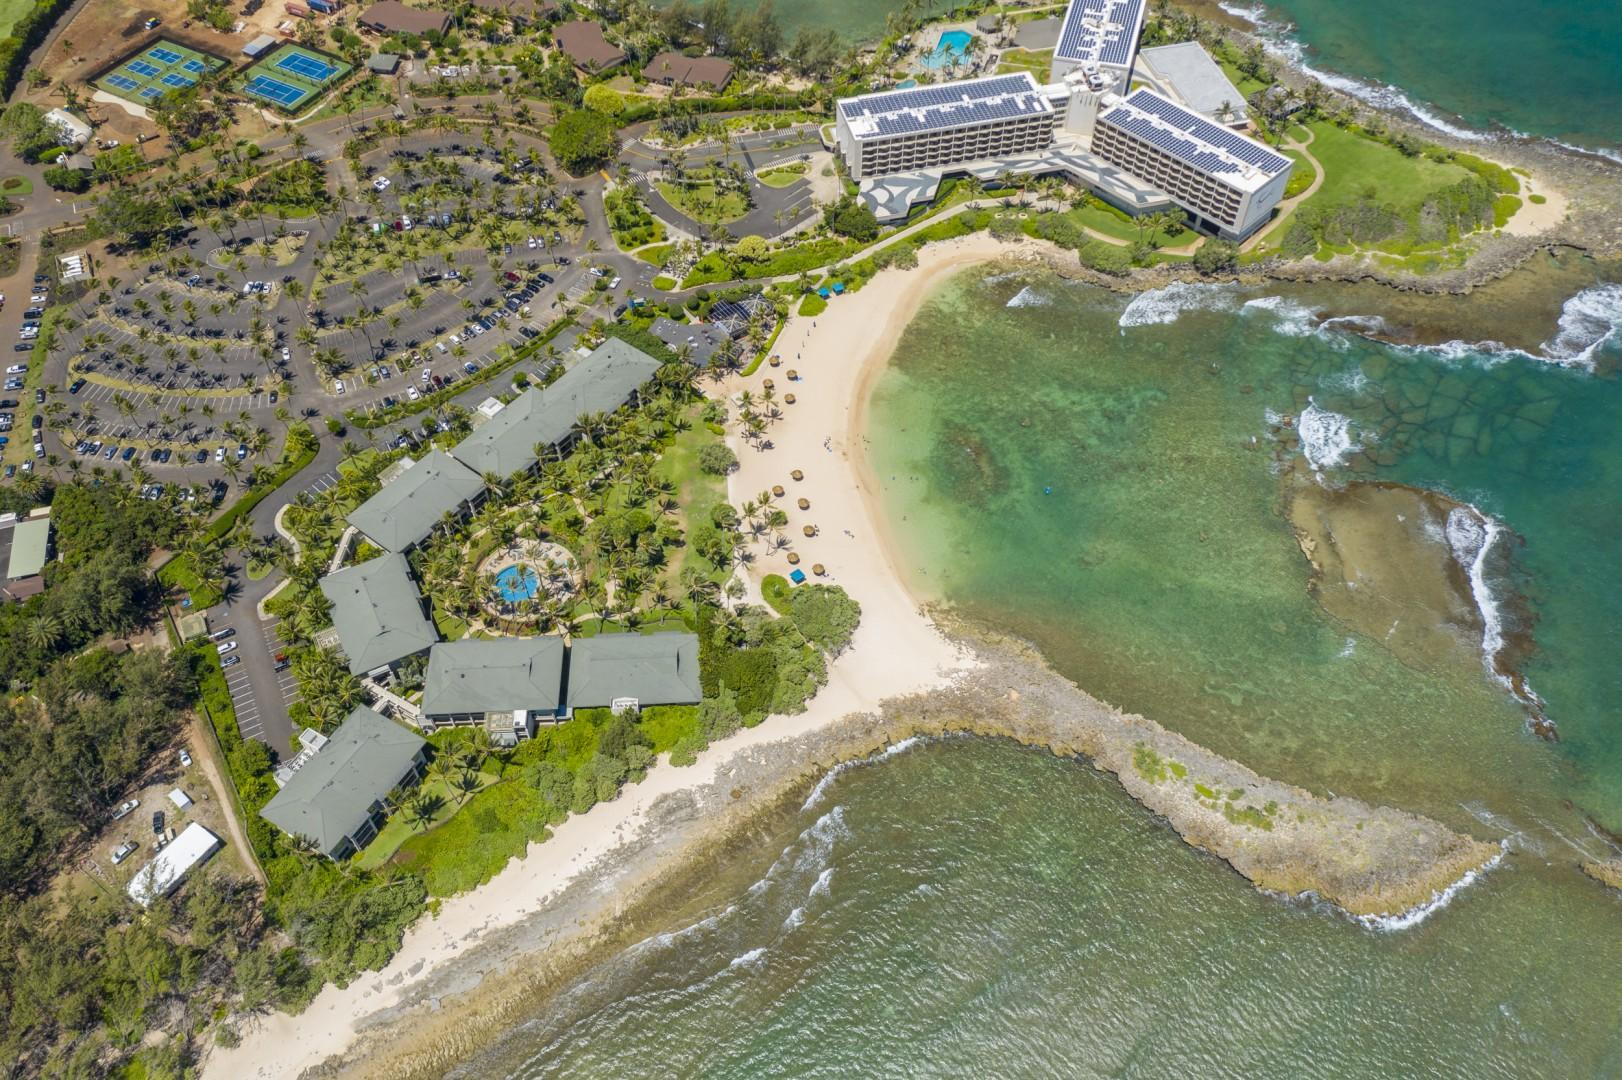 Overview of Turtle Bay Resort Hotel, Turtle Bay Ocean Villas and beach lagoon in front.